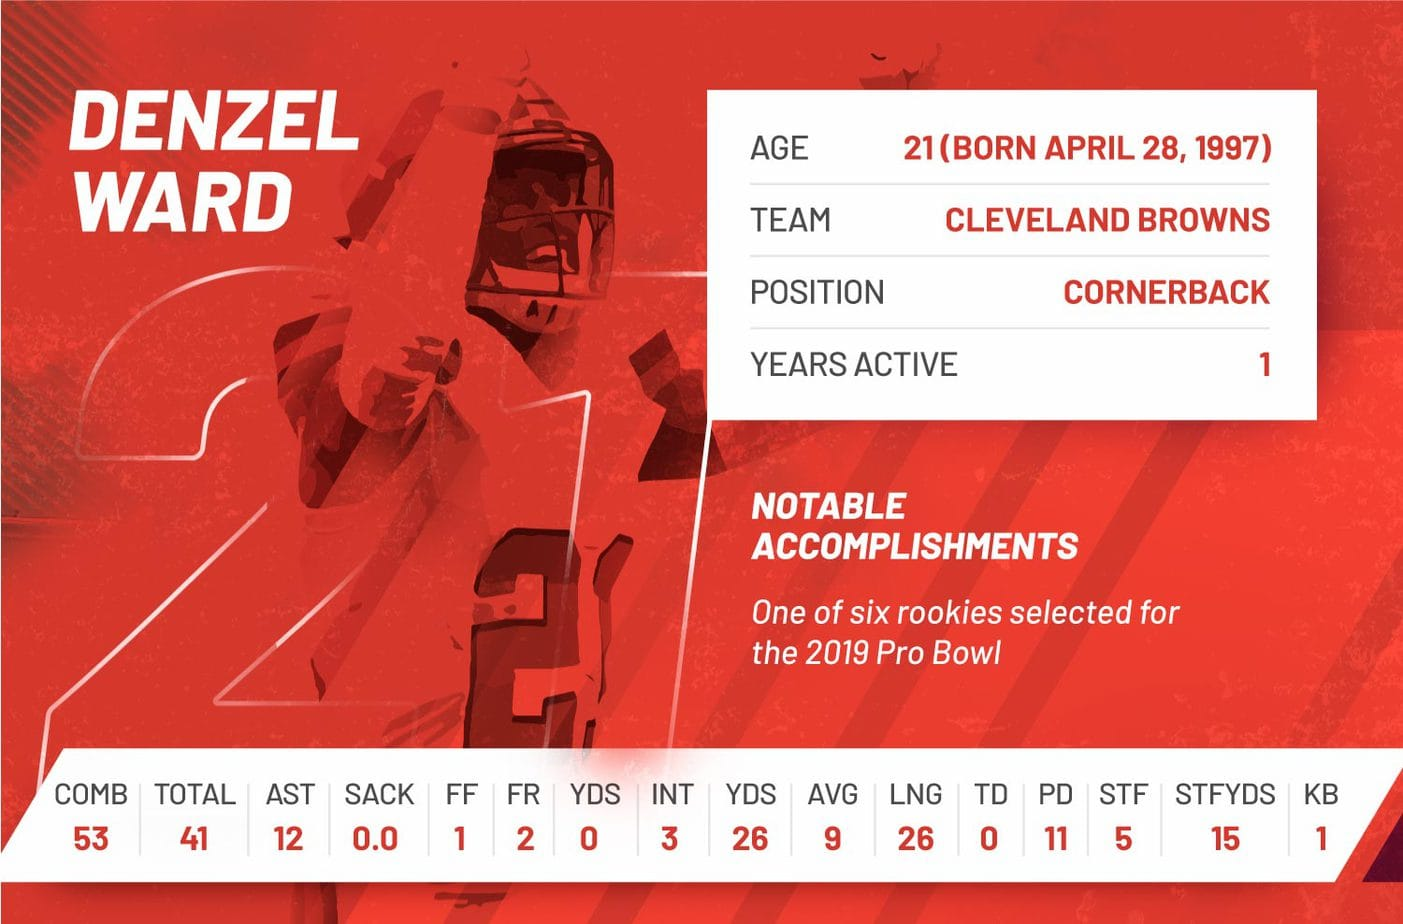 denzel ward nfl 2018 regular season stats